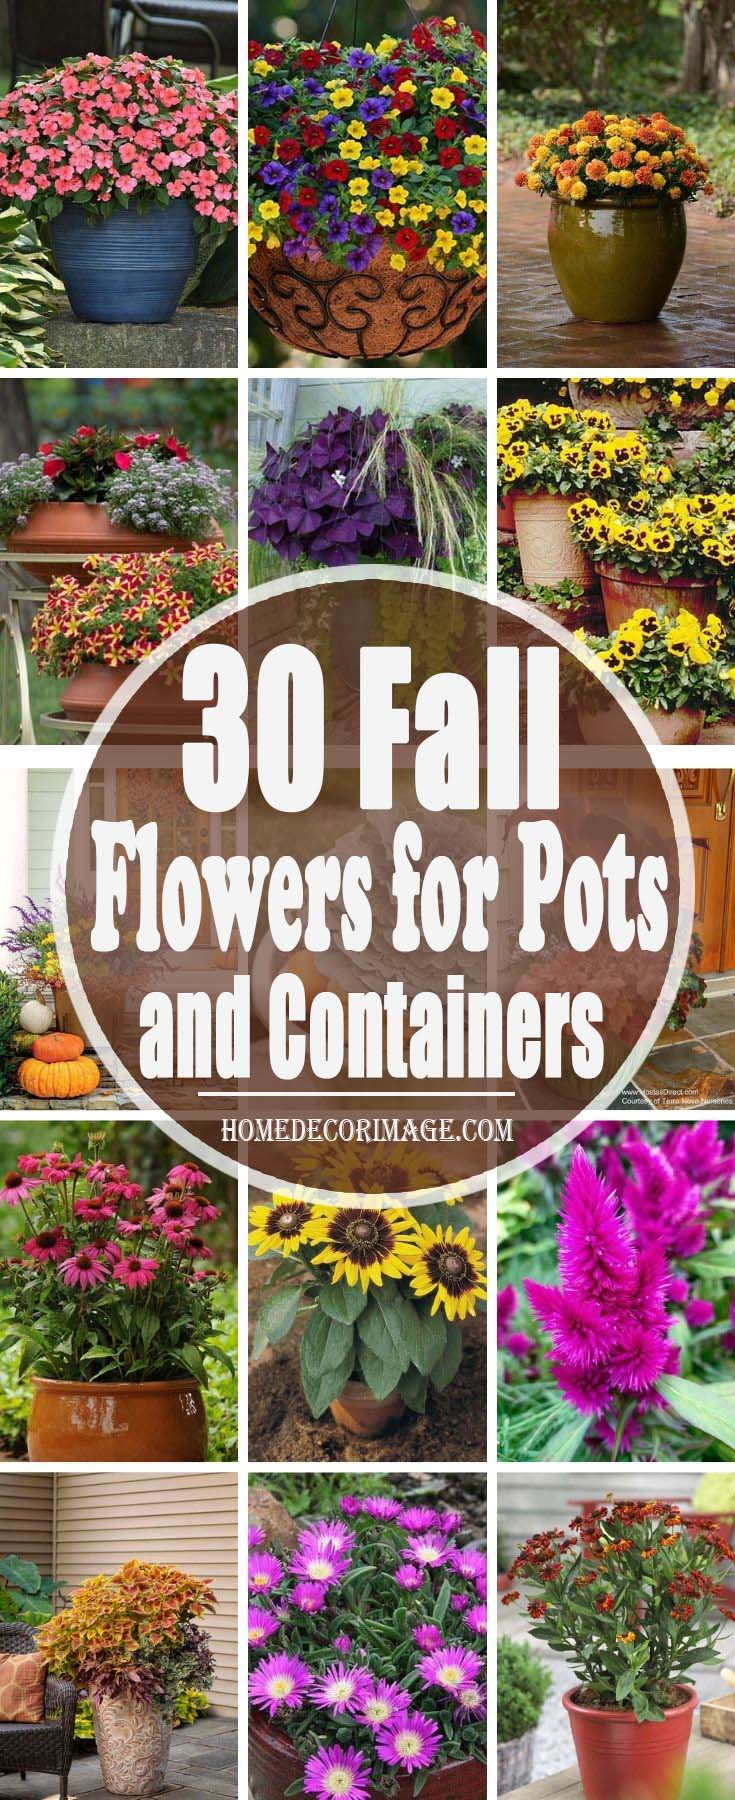 25 Fall Flowers for Pots and Containers To Add Color To The Rainy Season #fallflowerspots #homedecorimage